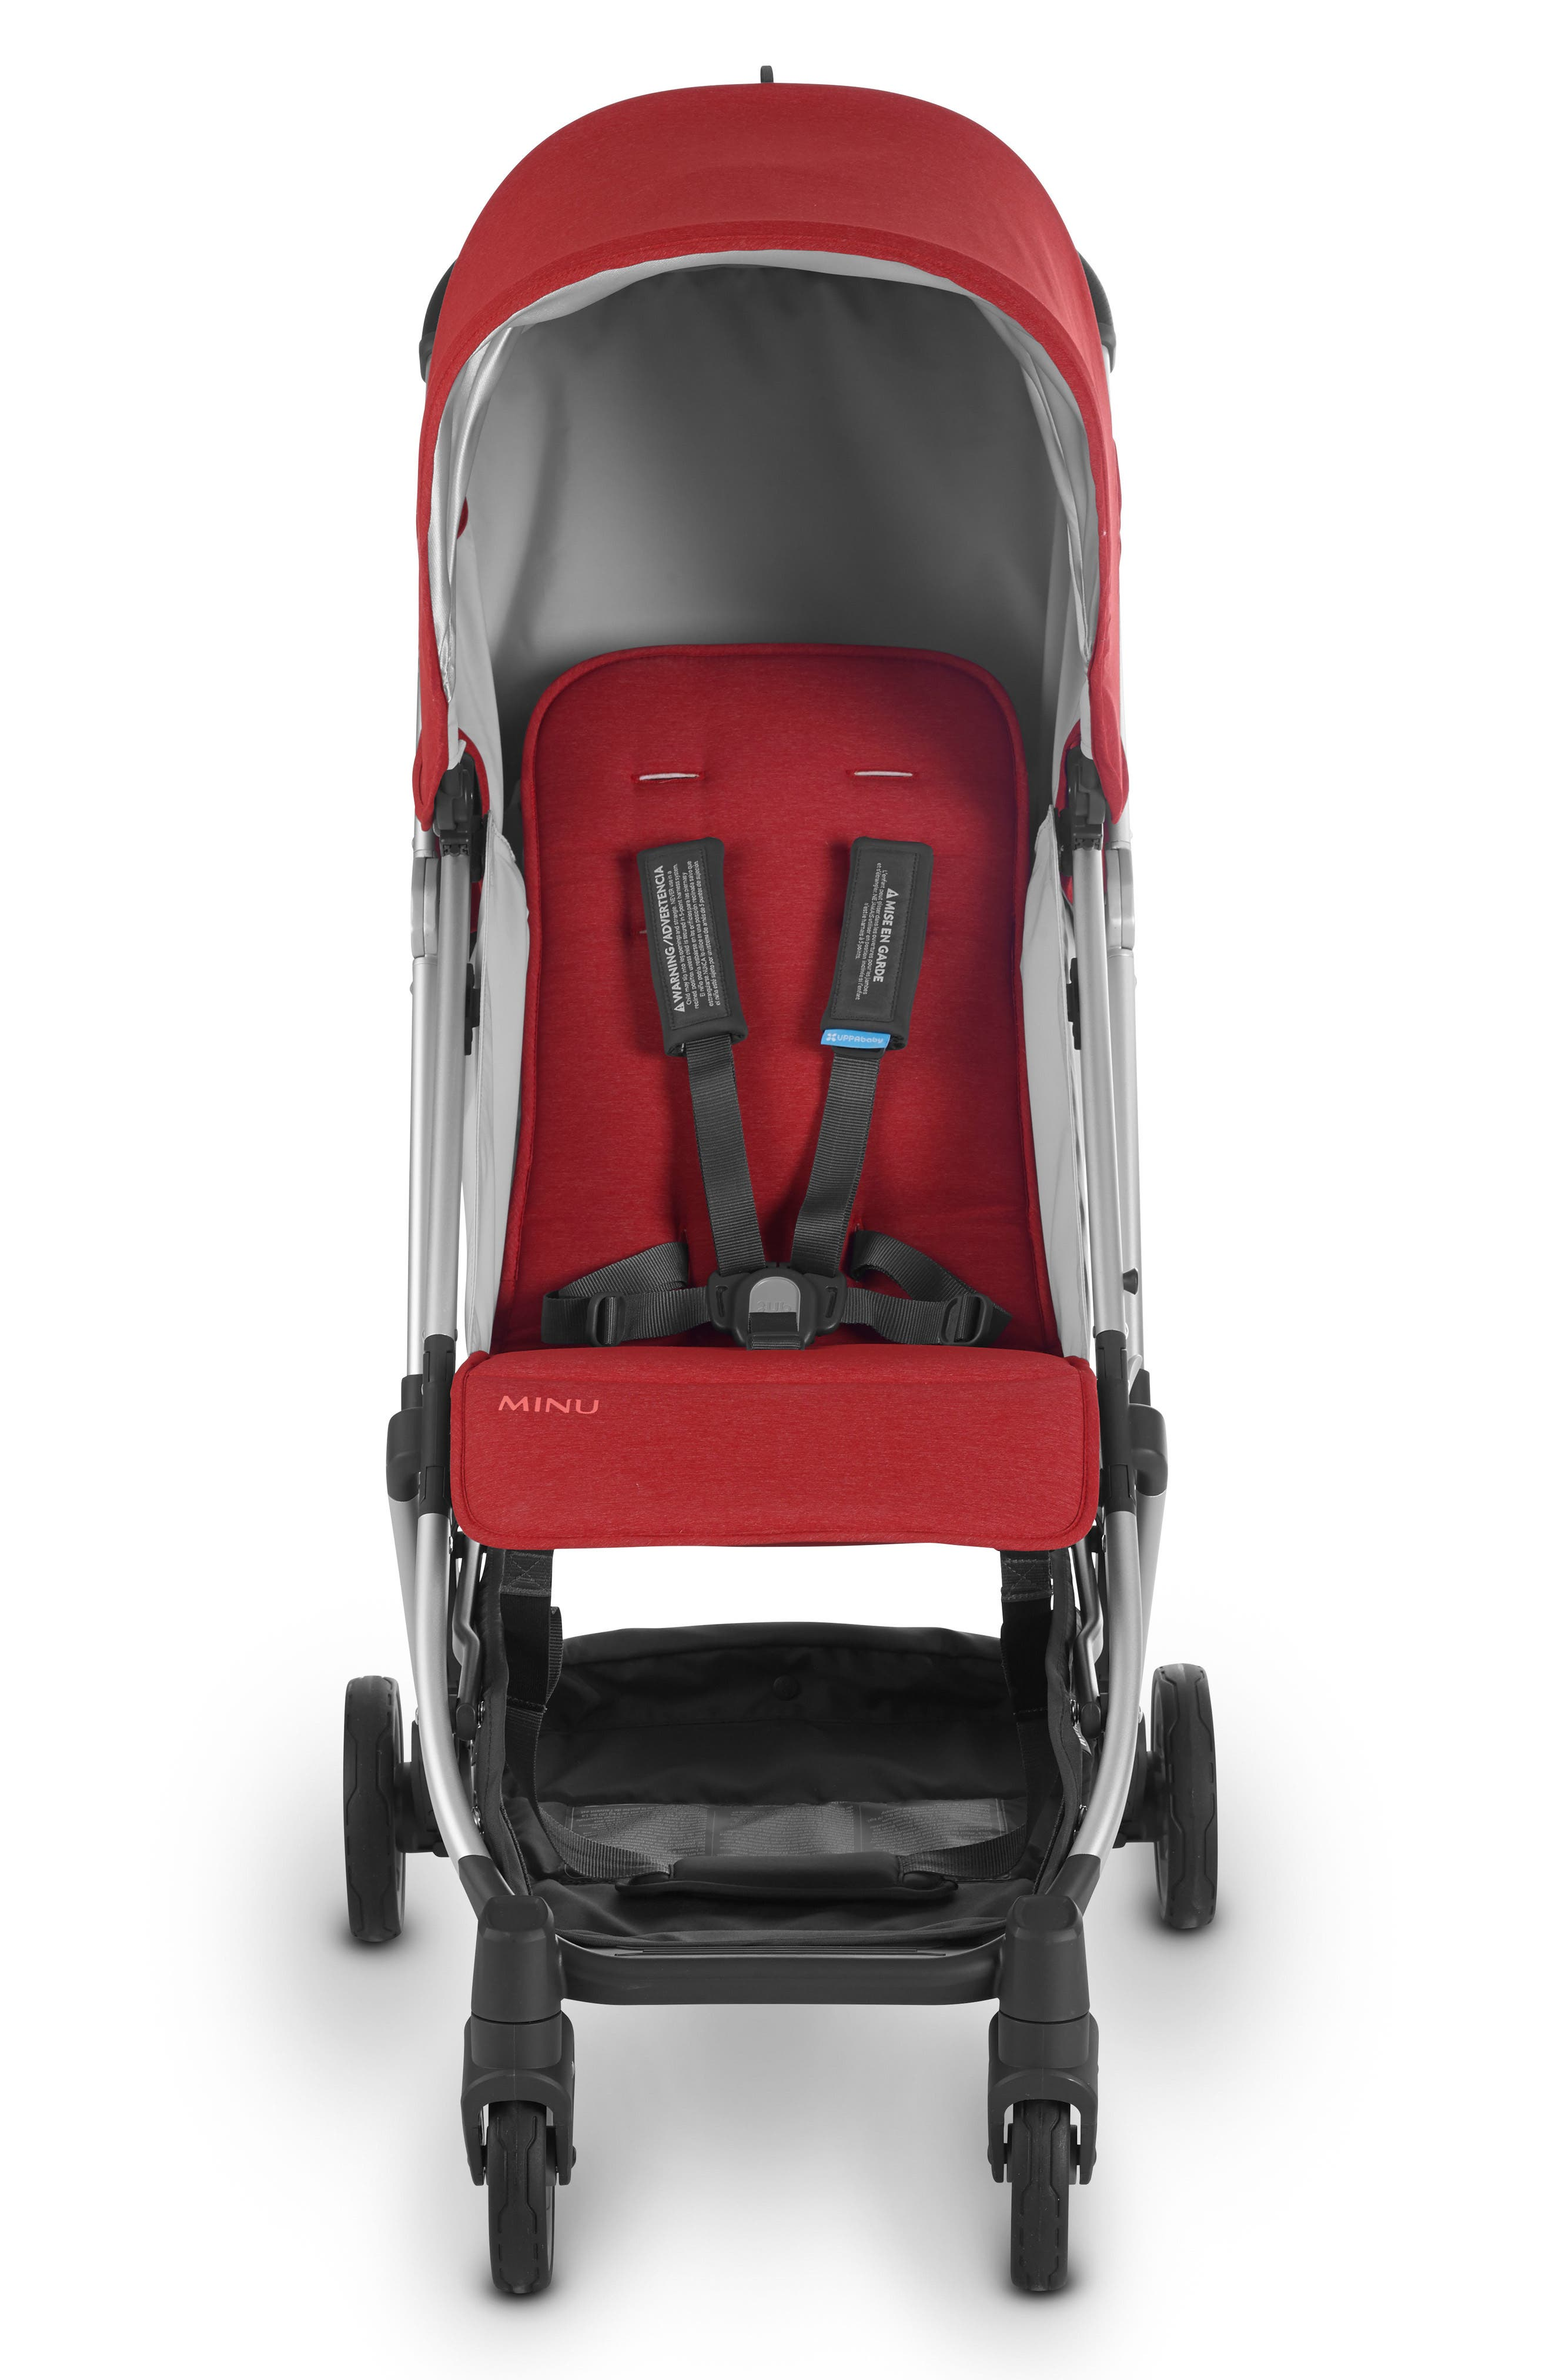 Infant Uppababy Minu Stroller Size One Size  Red